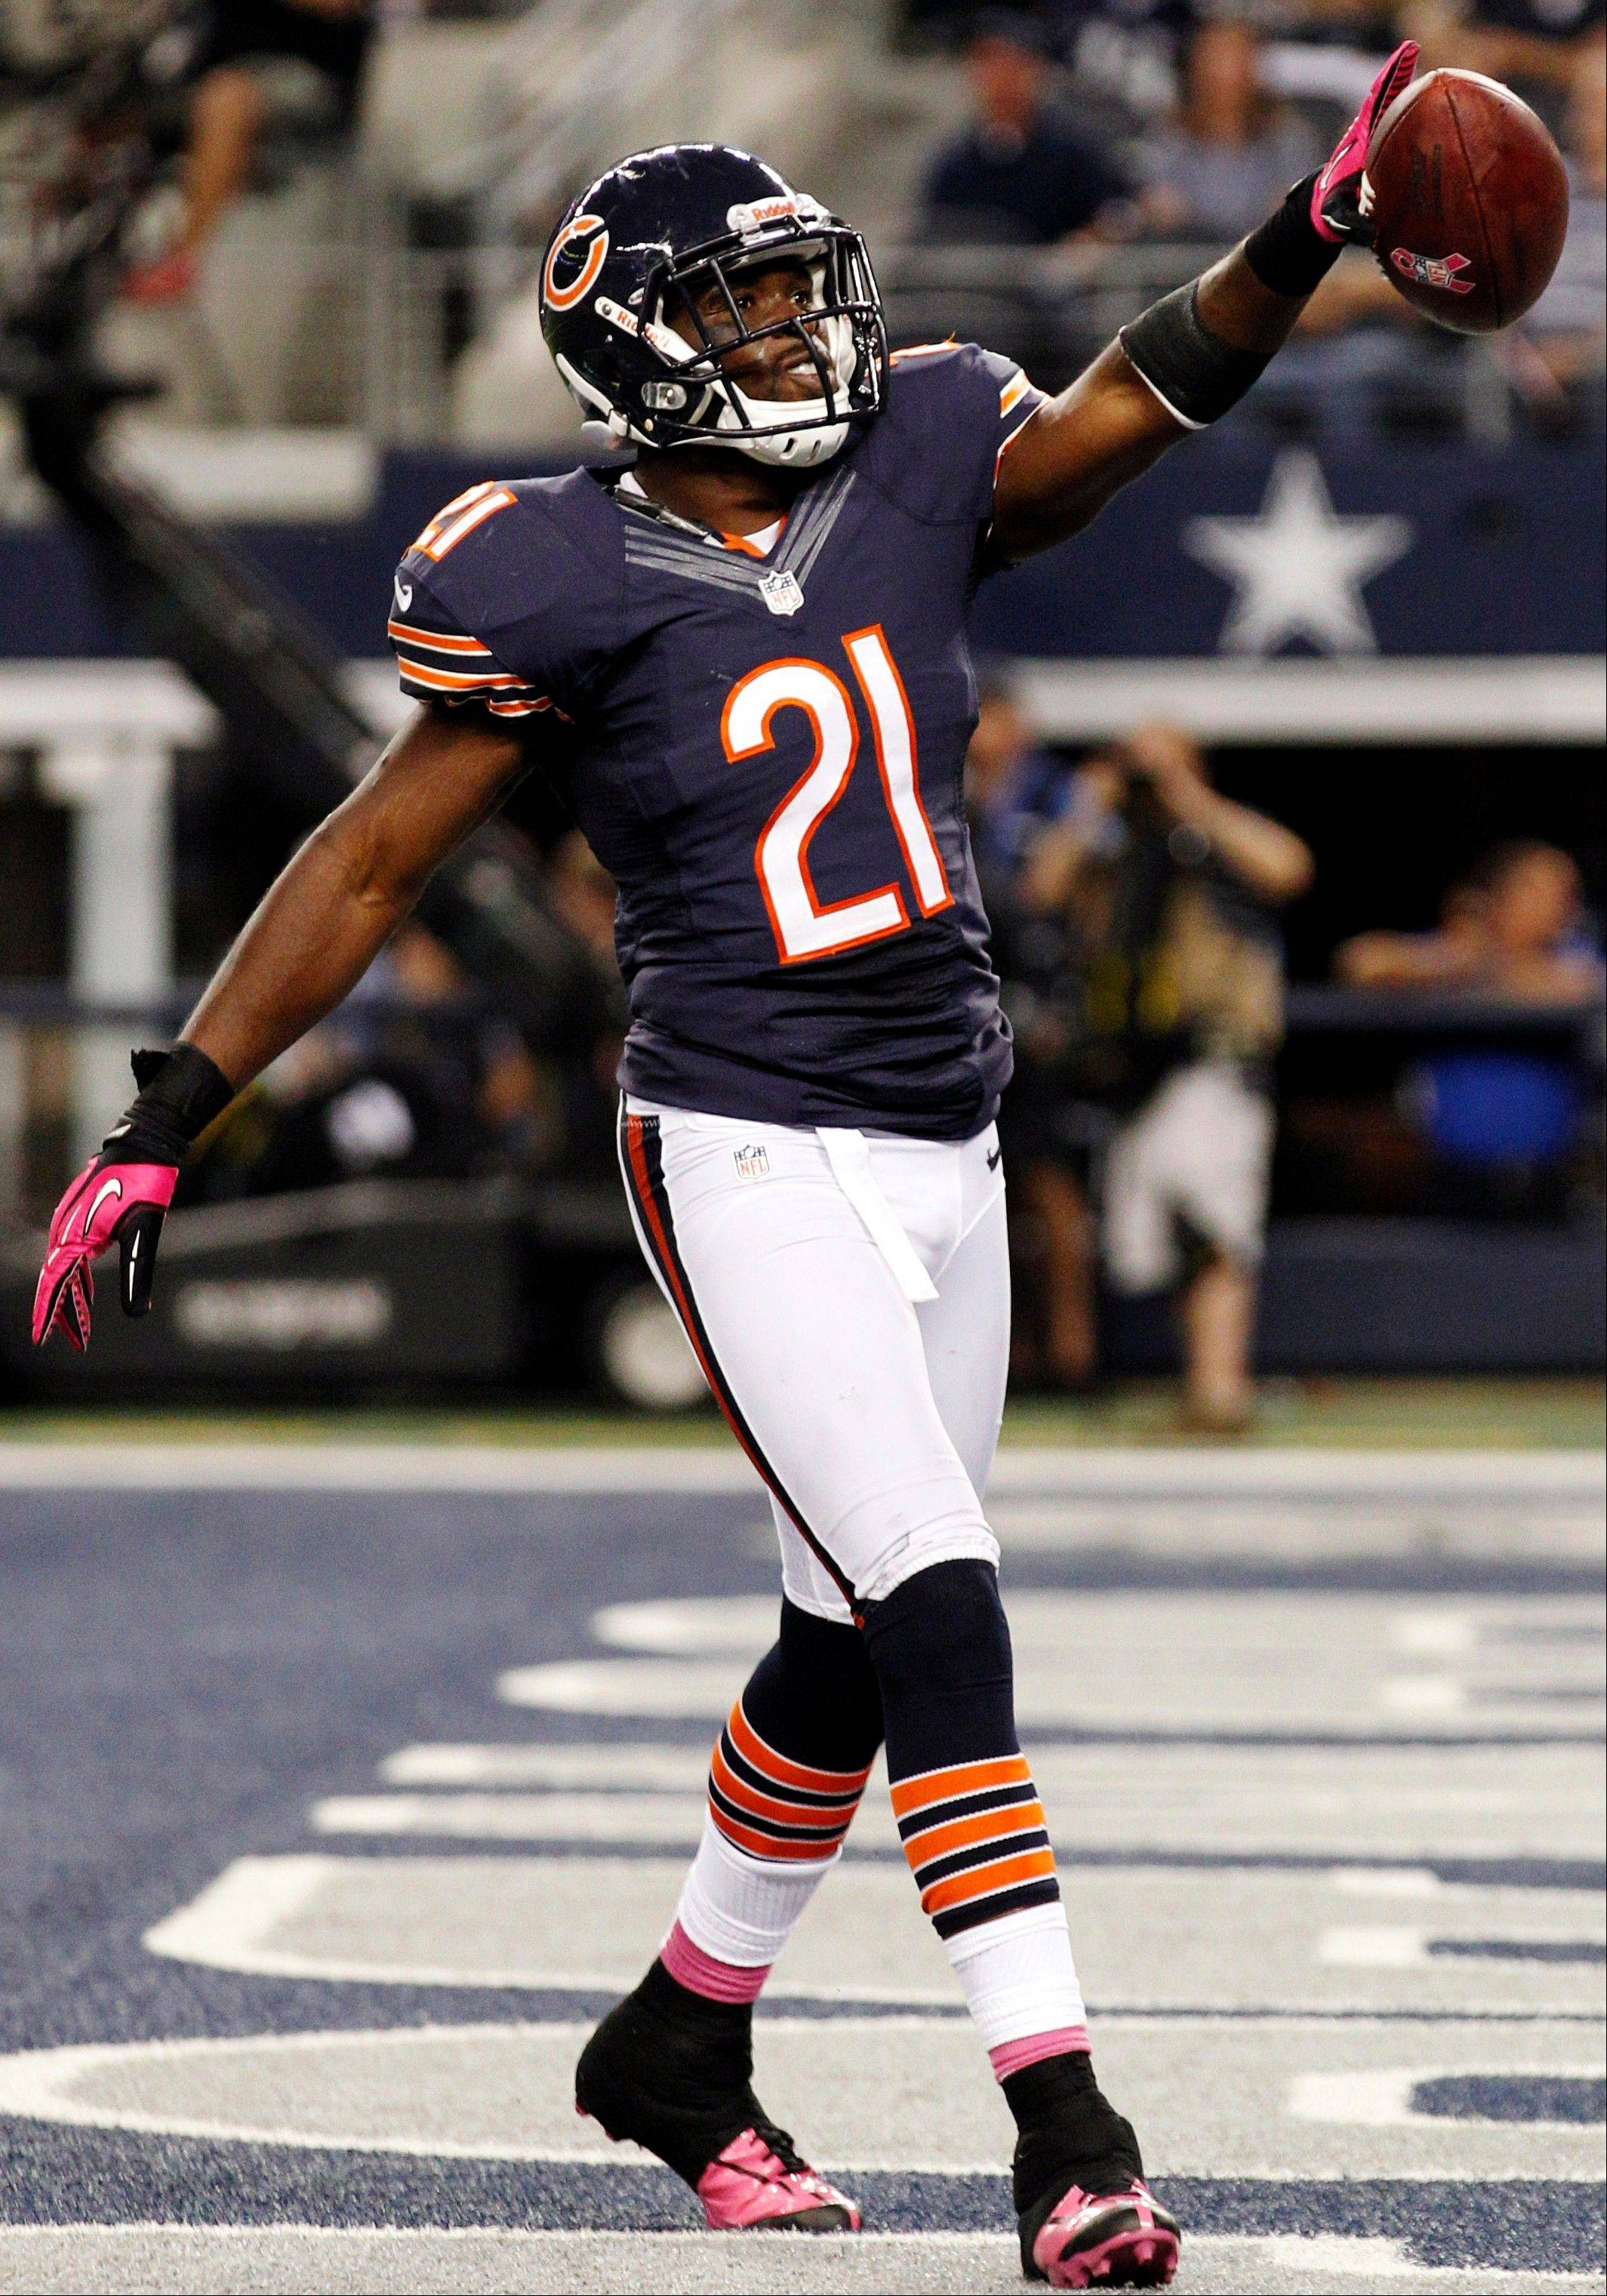 Bears strong safety Major Wright celebrates his interception against the Dallas Cowboys during the second half Monday in Arlington, Texas.